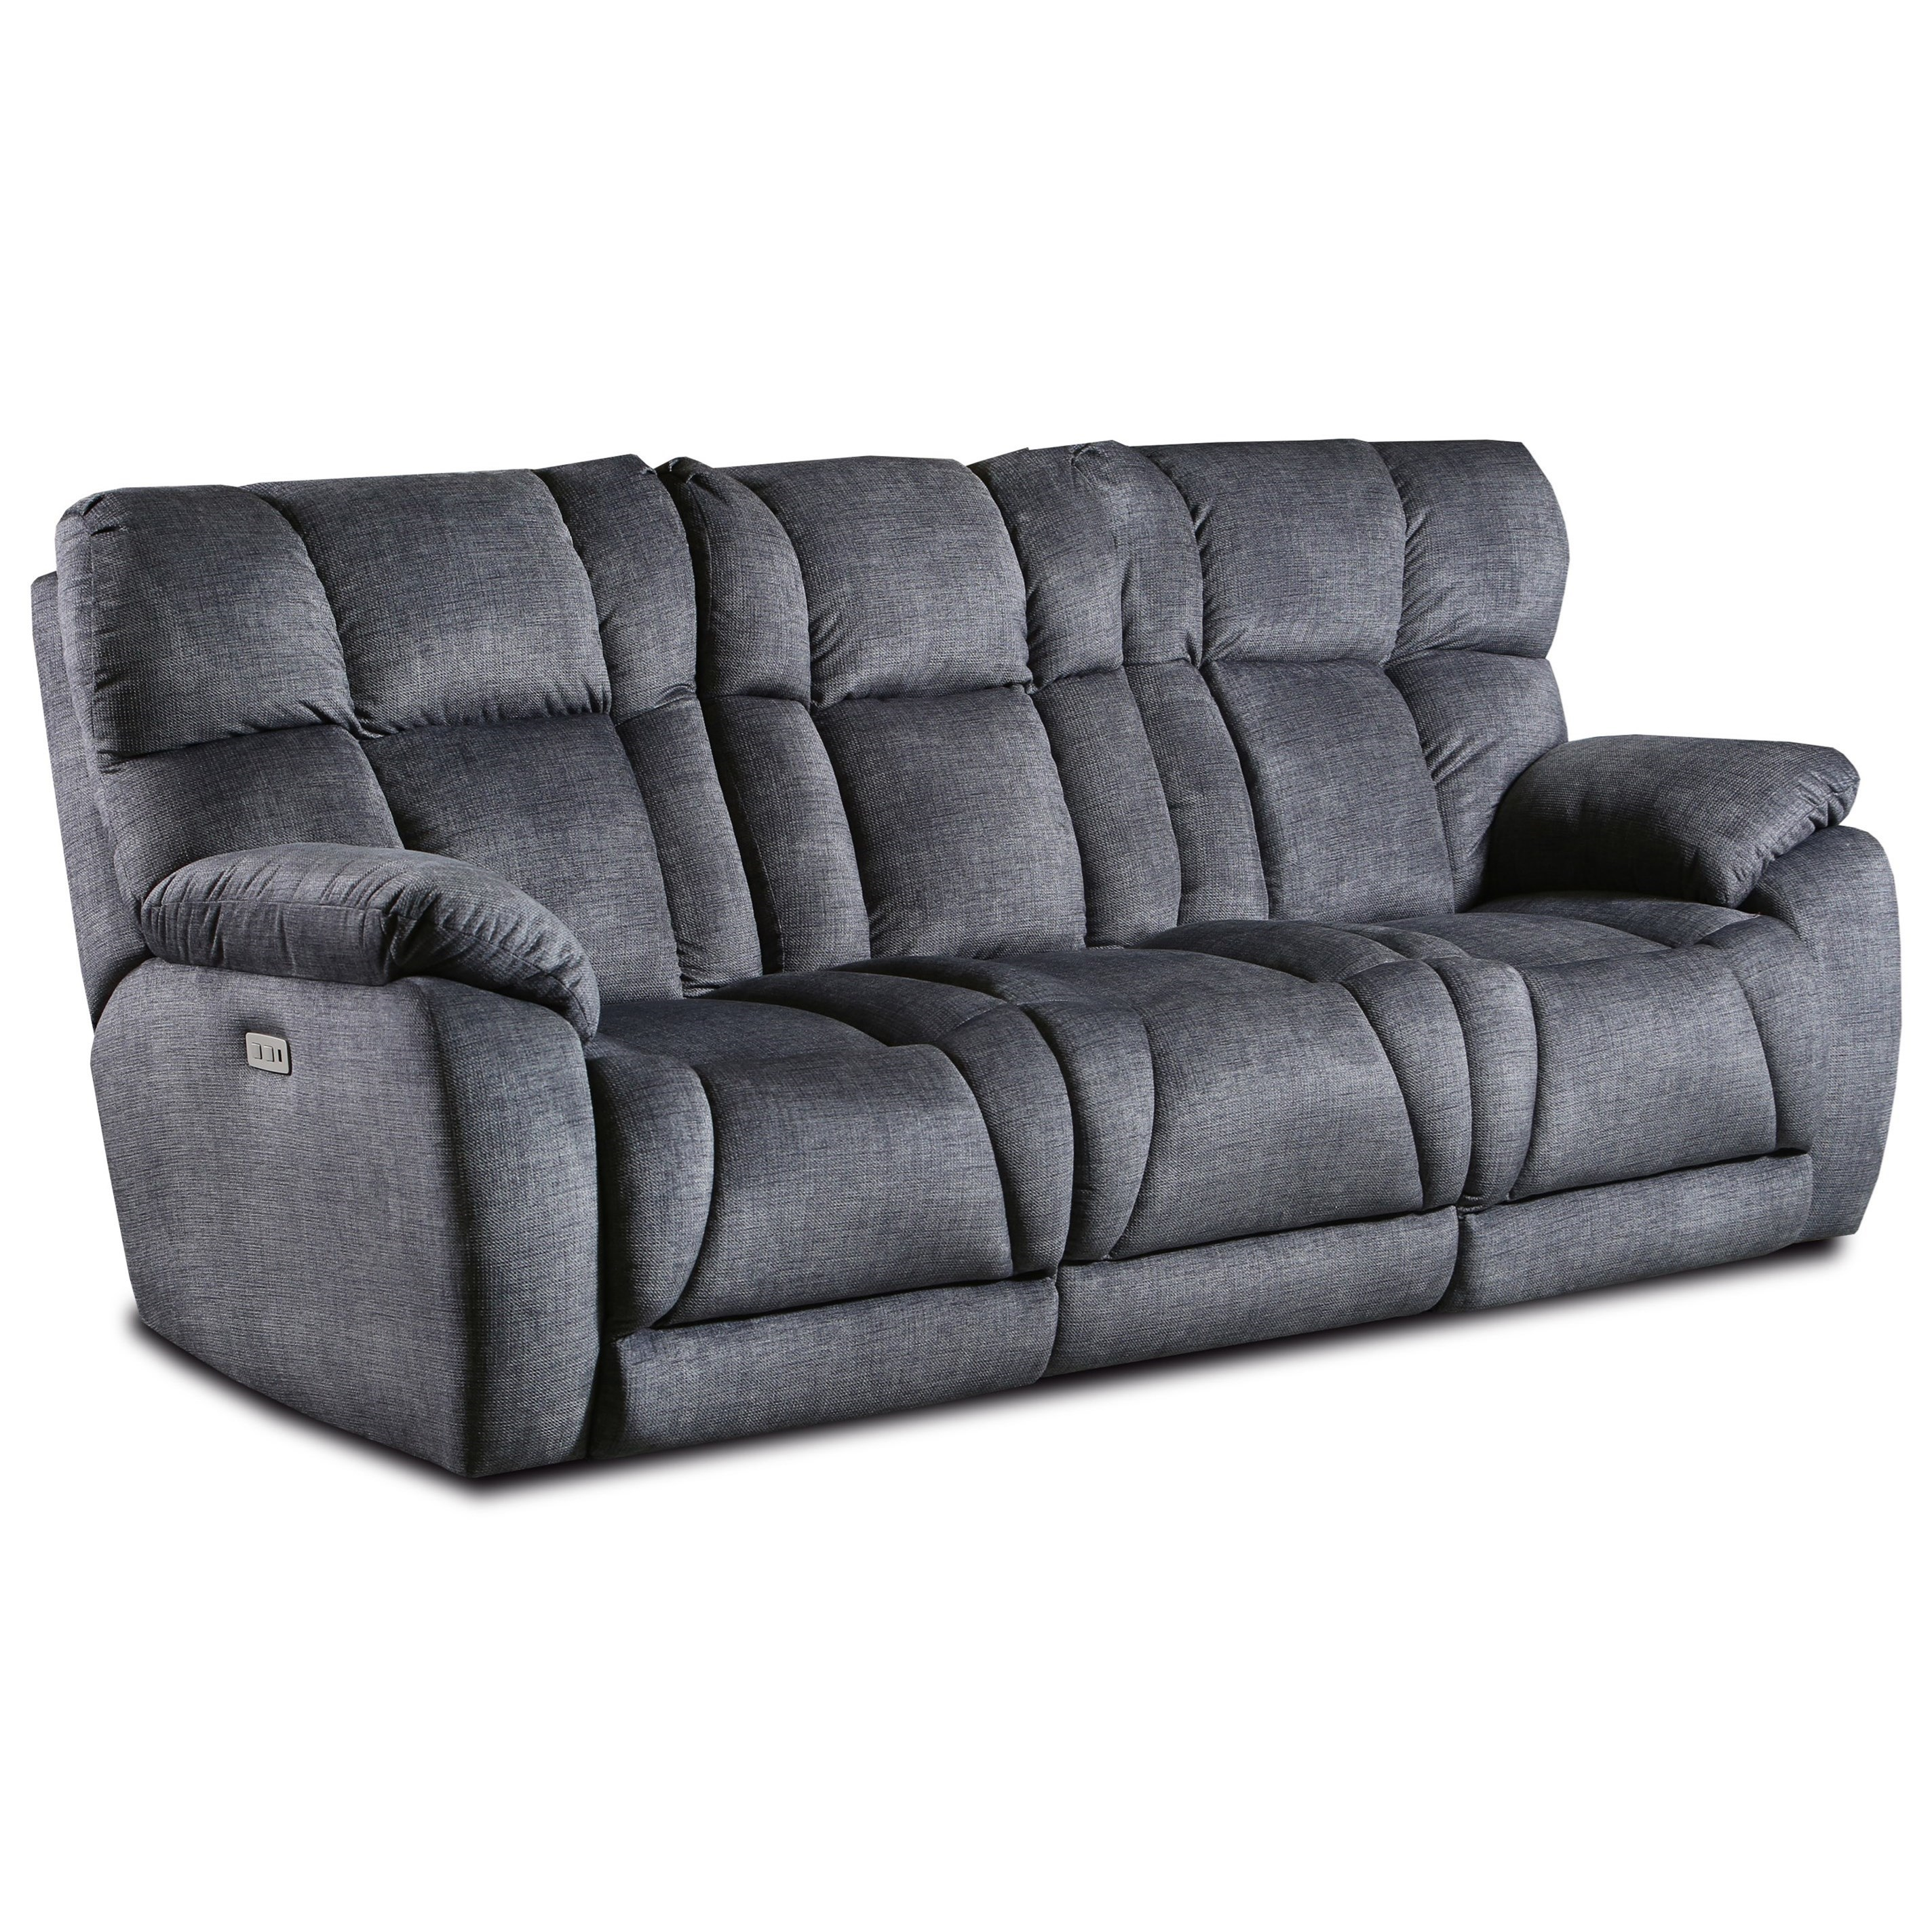 Wild Card Pwr Hdrest Dble Reclining Sofa w/Dropdwn Tab by Southern Motion at Fashion Furniture